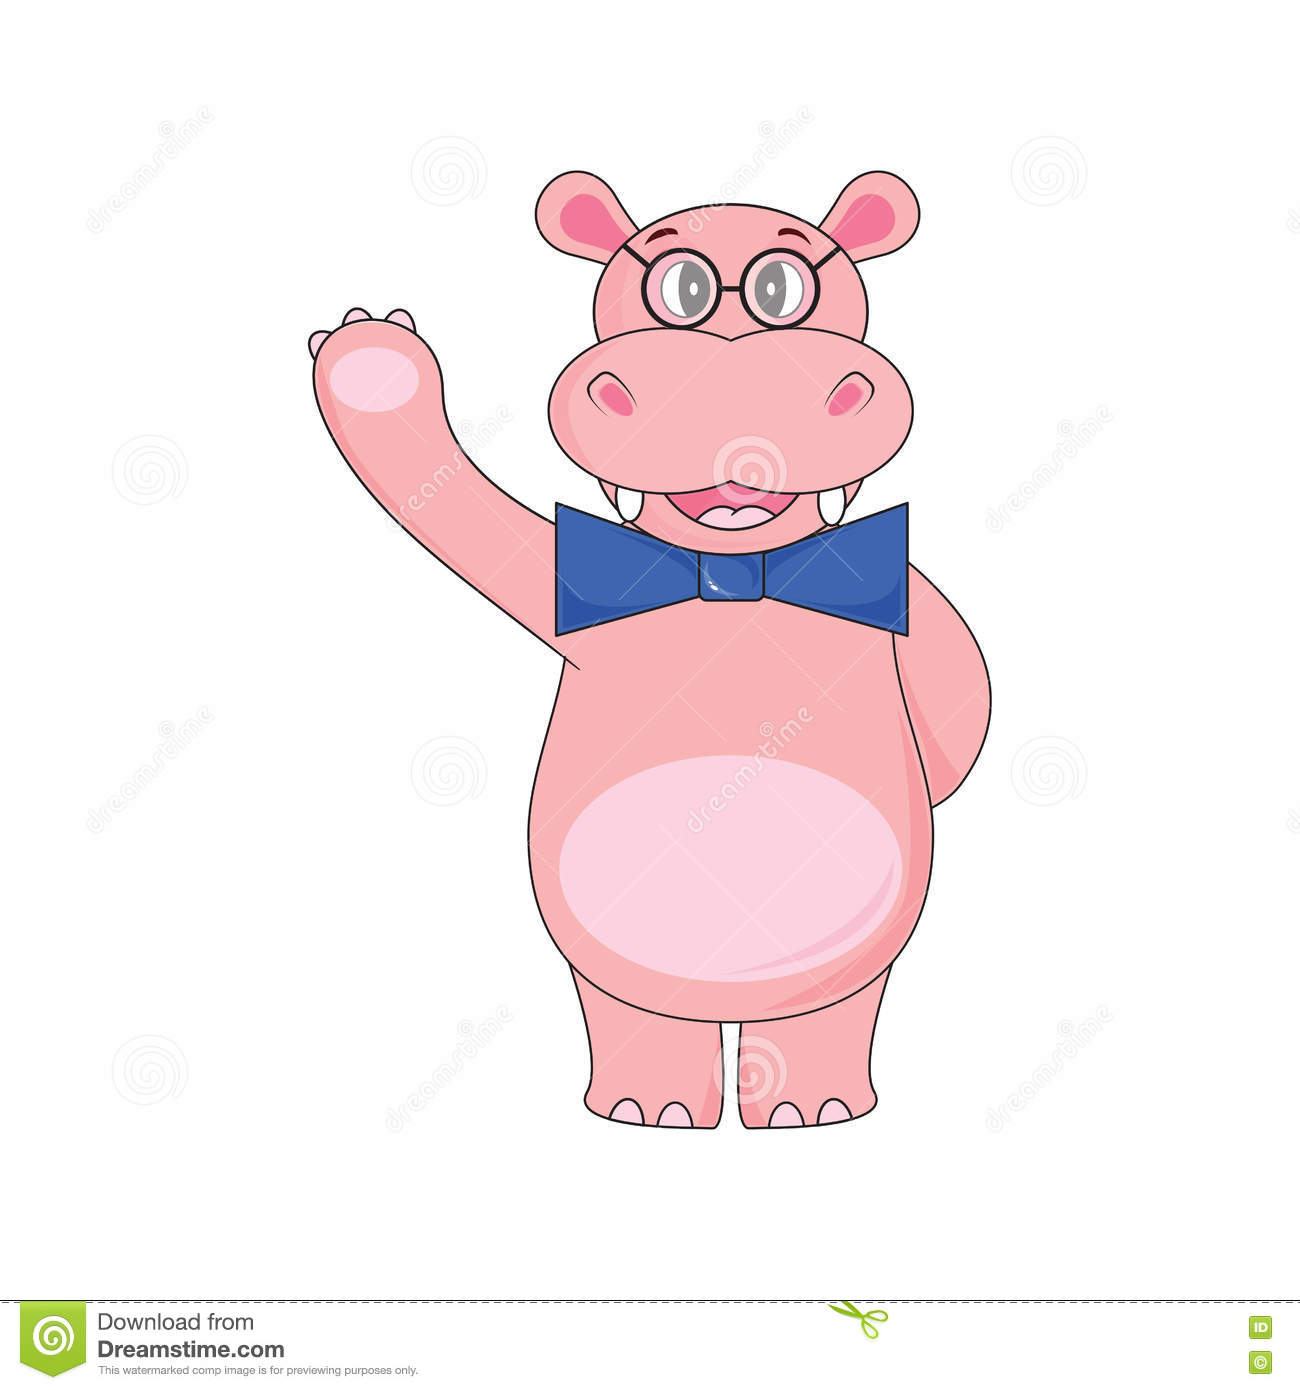 Hippo with bow tie, wearing glasses waving a paw on white background in vector